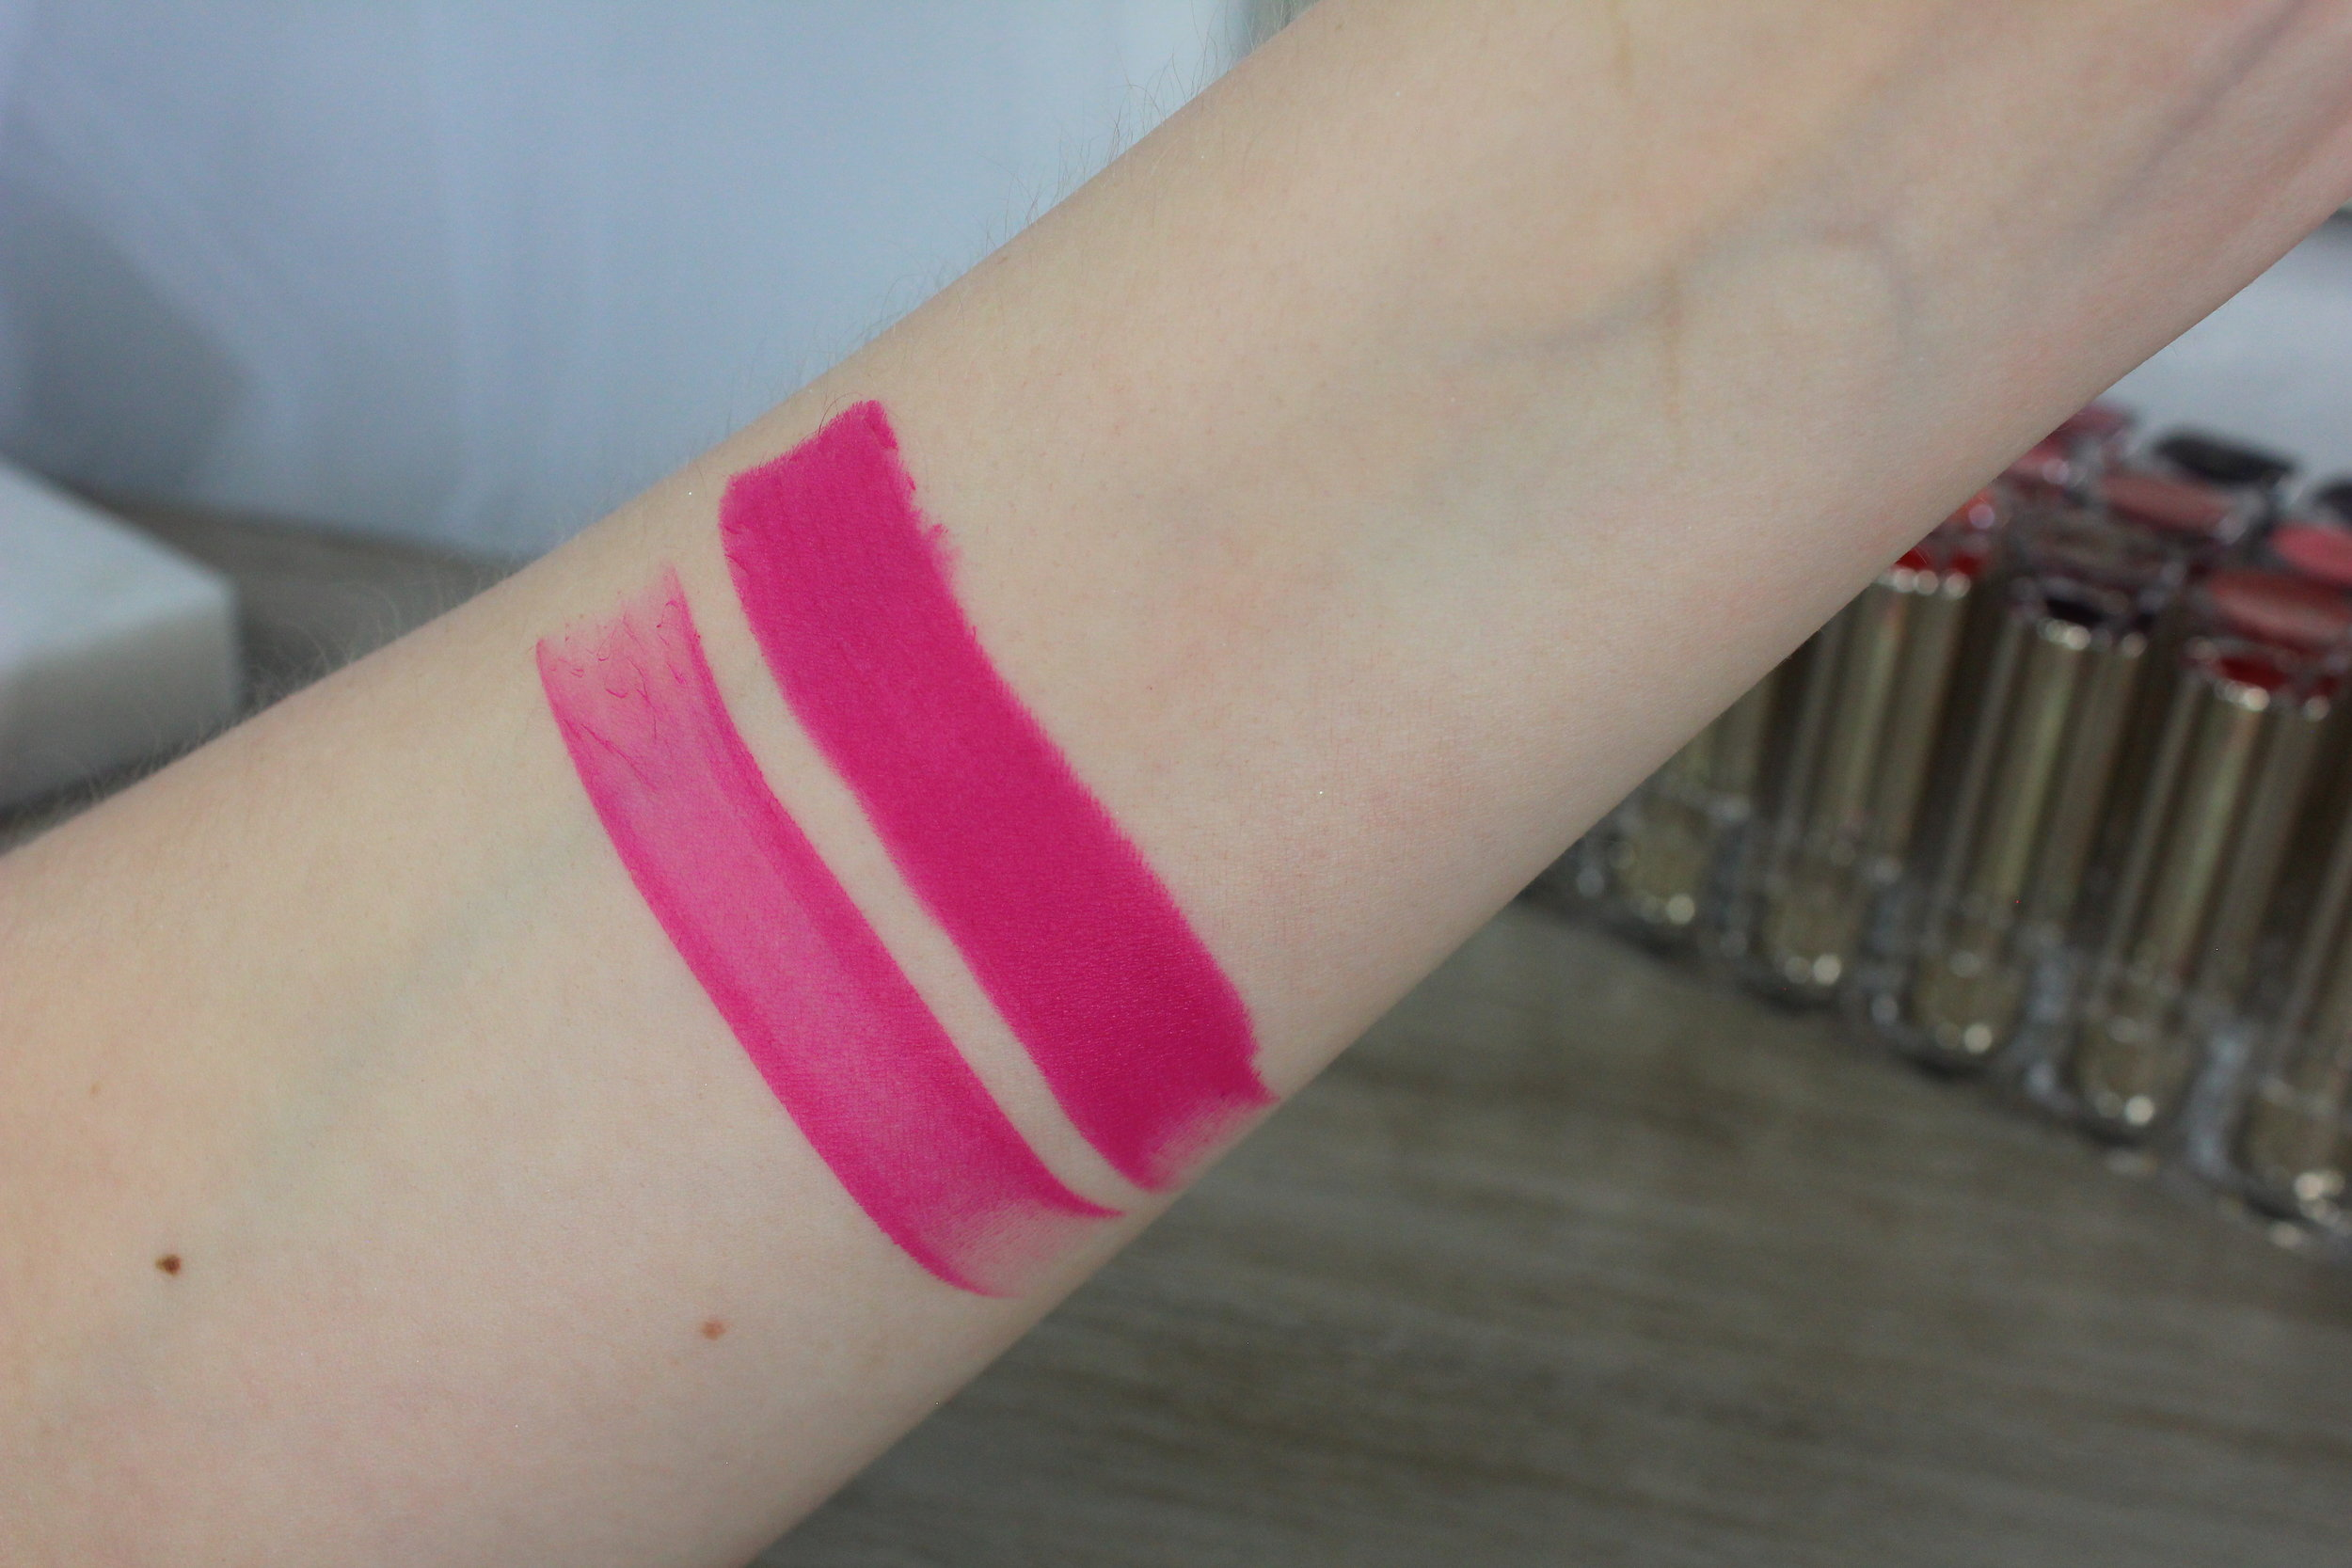 Estee Lauder Rebel Glam (400) swatch